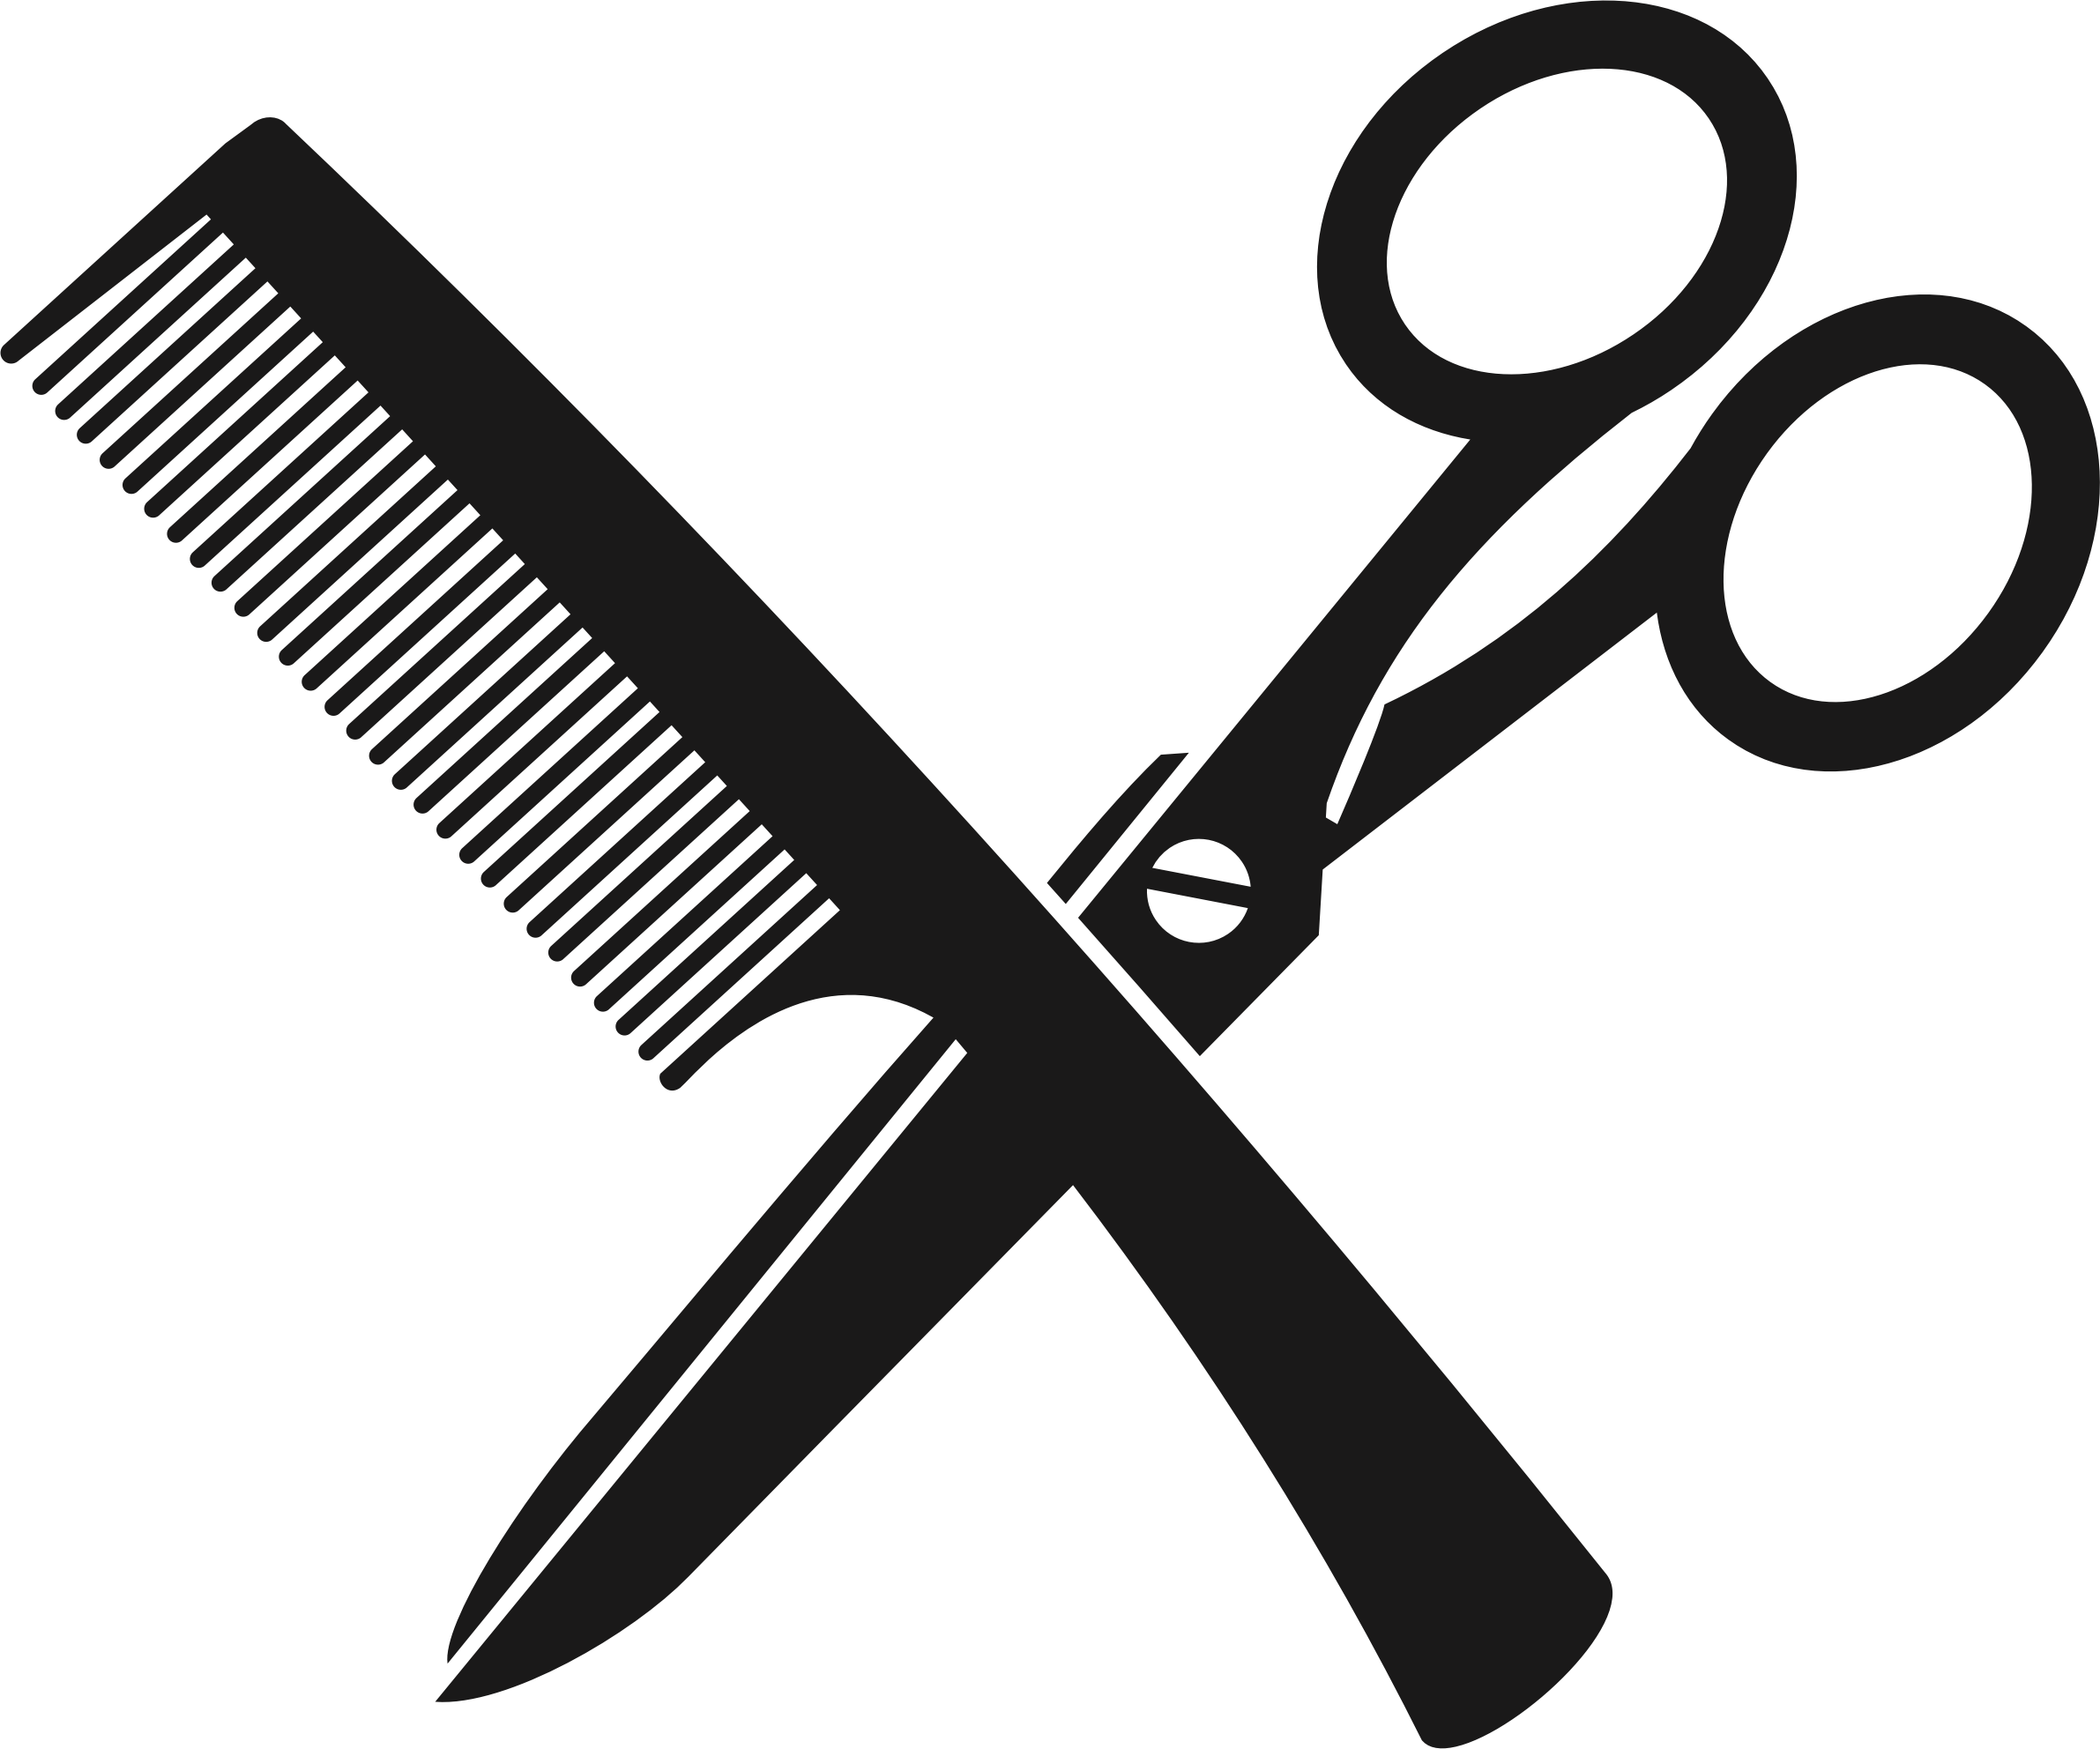 clipart comb and scissors 1